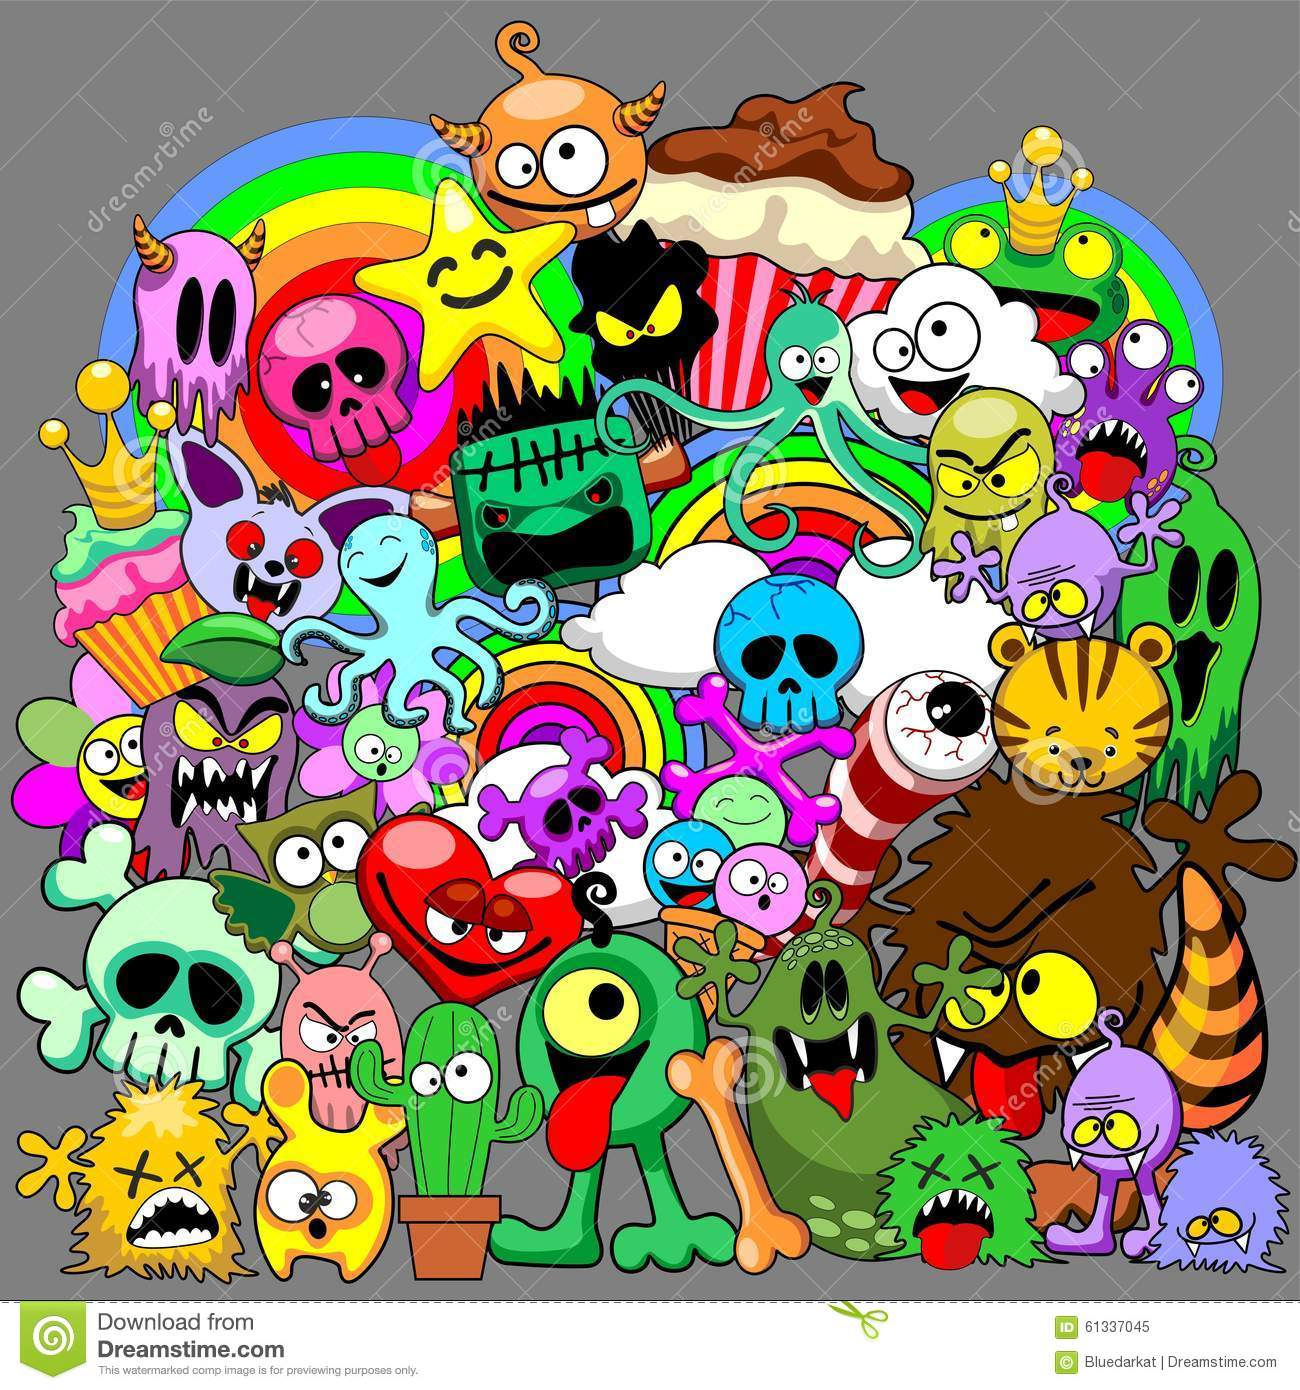 Doodles Monsters Saga Stock Vector - Image: 61337045